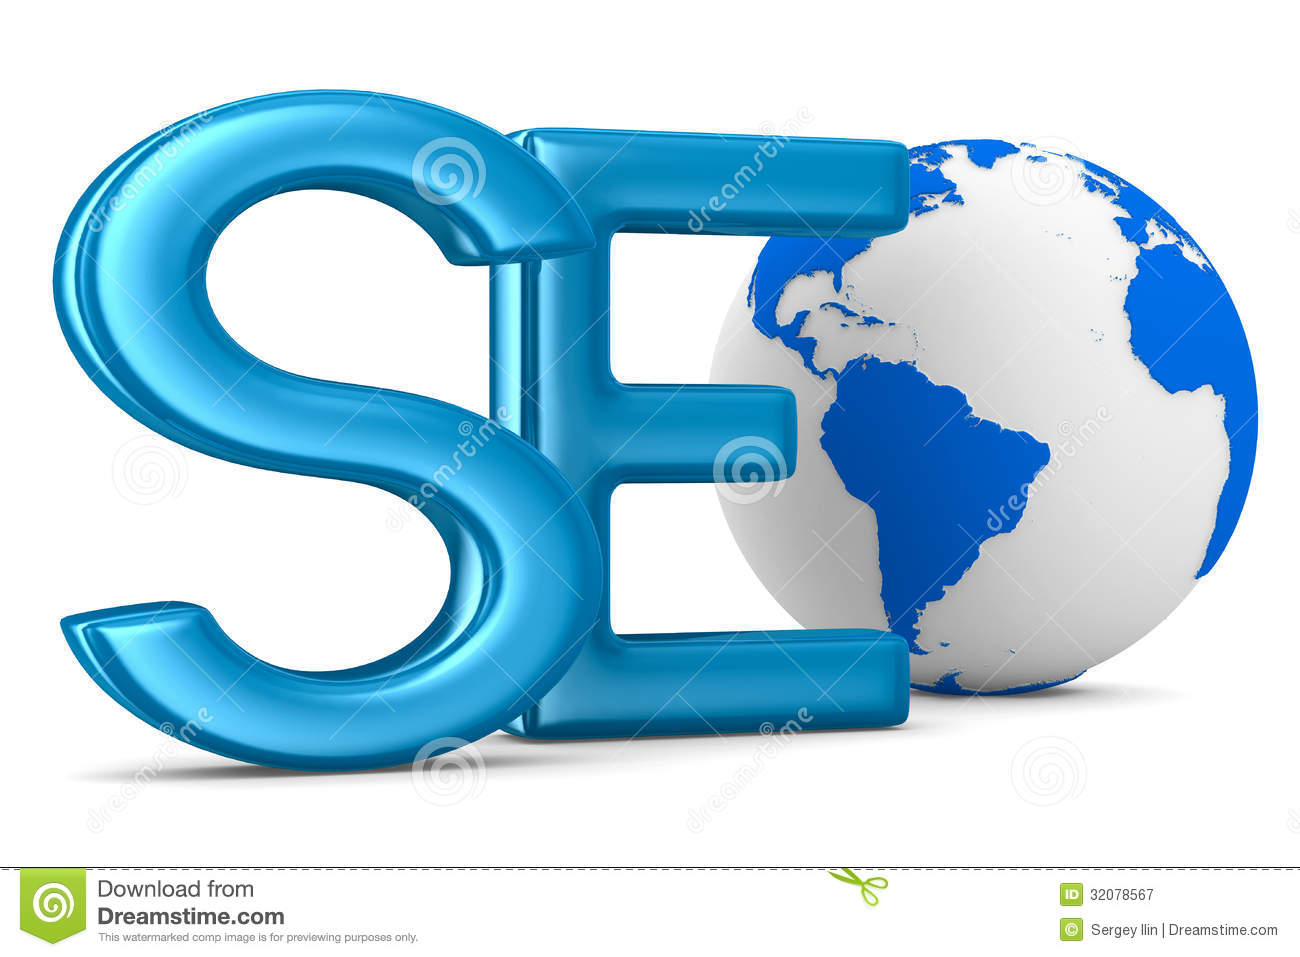 {Video Seo - Advanced Methods For Finest Seo Services|Update Your Business With Hot Selling Seo Plans|Take Your Website On Top With The Assistance Of Internet Search Engine Optimization|Everything About Freelance Seo Writing Jobs|Seo Suggestions - Lucrative Link Building|The 5 Not So Well Features Of Seo|Choice And Roll Your Complimentary Ffa Leads And Increase Your Seo|Search Engine Optimization, Placing - Is Chasing Google Algorithms Worth It?|How A Search Marketing Specialist Can Increase Your Website Visitors|The Best Ways To Start An Adult Online Business|10 Methods To Enhance Traffic To Your Site|Profitable Google Adwords Project Management Implies Handling Your Site First|Post Marketing Technique To Promote Your Mlm Business|The Lazy Man'S Way To Complimentary Site Traffic To Your Mlm Blog|Mlm Lead Generation - Seo - Short Article Marketing|Pointers For Utilizing Seo Techniques|The Important 2007 Code Optimization Tutorial For Seo|Attempting Several Articles For Your Website Marketing|5 Basic Seo (Seo) Suggestions- Get Your Website Ranked Higher|White Hat Seo And Black Hat Seo Are Quickly Disting|A Meaning Of Search Engine Optimization (Seo)|Diy Internet Search Engine Optimization|Ways To Outsource Article Blog Site And Site Material Writing|Online Search Engine Sales Force|Ways To Not Make Typical Errors Seo|5 Ways To Select Excellent Seo Specialists|Great Needs To Utilize Seo Consultants|How To Make It As A Rookie In Web Marketing|Niche Affiliate Network Marketing|Often Asked Questions On Seo|Producing A Home Company In Blogging|Ways To Utilize Your Blog To Market Your Business|Web Marketing Options - 3 Basic Pointers For Beginners|Google Search - Rank High And Make Big|Clear, Basic Easy Search Engine Optimization (Seo) Meta Tags|Google Ppc Alternative|Seo Pointers For Your Local Business|Points To Consider When You Hire Expert Seo Services|Organic Business Growth|Three Seo Mistakes That Can Hurt Your Success|Terrific Ways To Promote Your Site On Google|Try These Fresh Seo Techniques|Part Iv - Getting Your Website Indexed In Msn|Starter Seo Plans For Beginners|Seo Ideas: 10 Most Crucial Inbound Links You Should Have To Your Site|Find Out About Social Networking Through Seo Software|Internet Search Engine Submission Step-By-Step|Highest Paying Google Adsense Keywords|Choosing The Ideal Seo Services For Your Business|2 Techniques For Having Lots Of Success With Your Blog|5 Methods To Enhance Your Search Engine Optimization At Very Little Cost|Advance Seo Suggestions - Get The Very Best Arise From Your Efforts|Optimize Your Internet Search Engine Ranking By Writing|Move Your Brand-New Website Up In Rank For Free|Social Networks Marketing Devices For Online Lead Generation|Realities Your Orlando Seo Company Should Understand About Keywords|Seo An Ideal Way Making Your Site Known|Why Your Seo Is Not An Office Supply, Part 1|I Needed To Discover A Method To Obtain Discovered Online, So I Introduced The Seo Experts|A List Of Crucial Seo Mistakes|Construct Your Own Mlm Blog For Free|10 Keys To Beginning A Profitable Blog|Constructing Strong Site Foundation With Seo Training|Seo - A Vital Element For Your Business|What Seo Experts Need To Never Forget|Third Huge Misconception Of Search Engine Optimization (Seo)|Your Blog As A Marketing Tool|My 3 All-Time Favorite Seo Tools|The Best Ways To Make On Page Seo Work For You|Traffic Generation: Planning To Get Website Traffic - Part I|Incoming And Outbound Links In Search Engine Optimization (Seo)|How Do You Get Your Orthodontic Website On Page One Of Google?|3 Efficient Seo Strategies To Rank Your Blog Site Posts Highly|The Competing Column In Wordtracker And Seo|Complimentary Web Website Promotion By Writing Articles|Paid Search Versus Organic Search - The Tipping Point|3 Seo Errors That Will Get You Google Slapped|How To Drive Traffic To Your Blog|Web 2.0 Is Free Internet Marketing|3 Steps To Rapidly Composing Posts To Promote Your Business|5 Web Site Optimization Tricks|Compose Your Way To The Top Of The Search Engines|Seo - Writing Quality Material For Optimization|Seo Mistakes You Need To Avoid Of|Niche Marketing Techniques For Online Marketing|Tips Making Your Home Based Business More Successful|Brand Name Structure: How To Make Individuals Connect To Your Site|Website Promotion - The Two Most Useless Ways To Advertise Your Online Business!|No-Cost Marketing Tools For Affiliate Marketers|What Everyone Should Learn About The Blogging Business|Search Engine Optimization New York It's Time To Progress!|Search Engine Optimization - Why You Cannot Ignore It|Seo Is The Very Best Web Marketing Strategy|Organic Seo Positioning Is Still The Most Proficient|7 Obscure Tricks To Video Marketing Success!|Keyword Analysis And Application - A Vital Part Of Seo|The Best Ways To Get Individuals To Read Your Blog|3 Crucial Seo Errors That Are Ensured To Keep You Off The Very First Page|Seo Atlanta Reviews Seo Basics|Maximizing The Blogging Experience, Marketing The Business|Static Websites And Seo Are Dead: Please Make A Note Of It|5 Covert Blog Site Killers|2 Ways To Obtain Faster Online Company Profits|Simple And Quick Seo Pointers Newbies Can Follow|Search Engine Optimization Meta Tags - Which Tags Matter?|Seo Pointers For Chiropractors|Getting High Traffic And High Revenues Through Seo Business India|Seo And The Inbounds And Outbounds Of Link Building|Traffic Generation - Ways To Get Totally Free Traffic To Your Web Site|7 Easy Steps To Take Today To Get Your Online Company Started|How To Get Free Traffic From The Search Engines|Online Search Engine Copywriting - 7 Ideas For Improvement|Revenue Lance Suggestions On Post Marketing - Must Know!|Linking For The Search Engines|Driving Your Seo Expert Insane|Pointers On Being A Freelance Seo Copywriter|The Best Ways To Get Your Website In Google|Seo - Can It Help Your Business?|A Couple Of Seo Friendly Suggestions For Link Building|You Can Intensify Traffic With These Powerful Seo Tricks|Get Traffic With Seo Thinking|Adwords By Google - Disagree Or Not - It's A Must For Internet Online Marketers!|Search Engine Optimization Might Help You Get More Visits On Yout Website|Seo Suggestions For New People|The Seo 10 Action Thumbnail Manual|Google Eliminates A Aardvark|Crucial Wording Your Web Site With Natural Language|The Best Ways To Outsource In Your Online Marketing Business|Energize Your Mlm Prospecting Utilizing Seo|Of Pandas And Penguins - Seo For 2013|Exactly What Is Very Important To Online Search Engine Marketing Recently?|Significance Of Content Writing And Online Search Engine Optimization|Seo Pointers & Tools For Search Engine Optimization|Dallas Seo: Get Your Very Own Location At Bing|Ways To Create Page Views On Associated Content|Well Factors To Alter Up Your Seo Campaign|Seo Warranties - Web Marketing Fraud|How To Prosper In Internet Marketing|Important Methods Of Natural Seo|Easy Seo And Link Structure With Several C Class Ip Hosting|Enhance Your Little Company'S Website Seo With Press Releases|The Best Ways To Market Your Seo Services?|Advice On Site Marketing Companies|Questions To Ask When Budgeting For Seo (Seo). X-E-N-D-X.|Seo - Some Basics For The Newbie|Keyword Optimization - Exactly What It Means|Ways To Increase Traffic With Complimentary Seo Suggestions & Tricks|8 Fantastic Complimentary Seo Tips|Web Marketing For Artists - Seo Tactics|Want Effective Small Business Sites? Here's 3 Need To Haves!|Maintaining An Seo Consultant|2 Ideas To Increase Blog Traffic|Seo Services India Make The Best Choice|Seo Techniques - The Fact About Search Engine Optimization|For Seo Specialists And Companies - Guaranteeing Seo Success Exceeds The Internet|The Importance Of Title Tags For Internet Search Engine Optimization|Seo Summer Training, Entry Pass To Internet Marketing World|Why Internet Business Chance Requires Leading Keywords For Optimum Income|Five Tips To Enhance Your Chances With Google Et Al|Online Marketing Showdown Seo Vs Pay Per Click Vs Social Media|Learning Keyword Marketing Today|Promoting Your Website With Seo|Chiropractic Marketing With Facebook Ppc|5 Things To Think About When Working With An Seo Business - Don't Get Burned!|The Seo Gameplan - Your Body Text|It Is Time For Law Practice Marketing And Branding To Evolve|Tested Efficient Seo Keys For Your Online Business|Let Seo Help You Bring In Visitors To Your Site|Company Opportunity Leads Doing Seo? Fear Just About Your Off Page Optimization!|Choosing The Best Regional Seo Services|Five Typical Seo Errors And Ways To Avoid Them|Adsense Techniques Tips Strategy Generating Income With Google|Criteria To Discover For Ensured Seo Service|How To Find Keywords For Your Website With Google's Keyword Tool|Traditional Company Usage Seo For Business|Seo - Exactly What I Have Learned|Making Use Of Fresh Standards To Enhance Your Web Marketing|Search Engine Optimization Tricks You Must Know|Article Marketing 101 - The Total Actions To Getting Started|Send Out Targeted Traffic Flocking Your Way With Local Seo|Developing Websites For Your Affiliate Marketing Business Can Be So Easy!|Ways To Begin Your Own Internet Business And Actually Make Money|Search Engine Optimization Optimization For Short Article Composing So Last Year|Exists Any Relation Between Seo And Ebay?|Ways To Start An Online Business|Promoting Your Business Utilizing Youtube|Website Marketing Methods That Work|Site Seo Techniques And Techniques|Seo Ideas For Bing Search Engine|Seo And Great Link Structure|Will Google+ And +1 Change How Web Marketing Functioned?|Exactly What Is Online Search Engine Optimization|Overcome Perfectionism With Your Property Marketing|Producing A Terrific Seo Friendly Website|Search Engine Optimization - 10 Common Errors To Avoid|One Of The Fastest, Easiest Methods Making Cash With Your Blog|The Best Ways To Get Real Seo Take Advantage Of Twitter For Your Business|No Brainer Seo Ideas And Techniques For Novices|Be A Search Engine Optimization Ninja By Targeting Long Tail Keywords|Simple To Follow Seo Strategy|Ways To Utilize Your Blog To Make Cash Online?|Company Branding With Seo|Seo Suggestions You Need To Know|Search Engine Optimization For Chiropractors|Off-Site Strategies - Seo For Blogs|Seo Ideas That You Need To Not Fail To Do!|Suggestions For A More Effective Home Business|Compelling Short Articles - 4 Practical Tips For Article Marketing Success|The 5 Crucial Aspects Of A Web Site|Easy Seo Suggestions To Enhance Search Engine Rankings And Pr|Revamp Your Company Website - Now Or Never?|The Best Ways To Pick Your Seo Web Designer|Seo - Rank Approximately The Top|Outsource Your Seo Strategy And Conserve Your Time|How Can We Increase Our Online Earnings Using The Seo Wordpress Plugin?|Various Ways To Optimize Your Site|Restaurant Marketing Online Search Engine Optimization|Do Not Get Left In The Dust - Discover The Most Current Trends In The Network Marketing|How To Write An Efficient Short Article For Seo|Bring Your Internet Search Engine Ranking Up The Clever Way|Ways To Make Money Online With Your Own Subscription Site|How You Can Make Cash Online By Running Your Very Own Seo Company|Reliable Seo Comes Cheap|Business Is Great; I'm Simply Not Selling Anything!|Ten Typical Seo Errors That Might Pull Down Your Rankings|Web Website Design And Development For The Little Business|Google Adwords Essentials - Part Three - Negative Keywords|Start A  search-engines-optimization-d-image-32078567